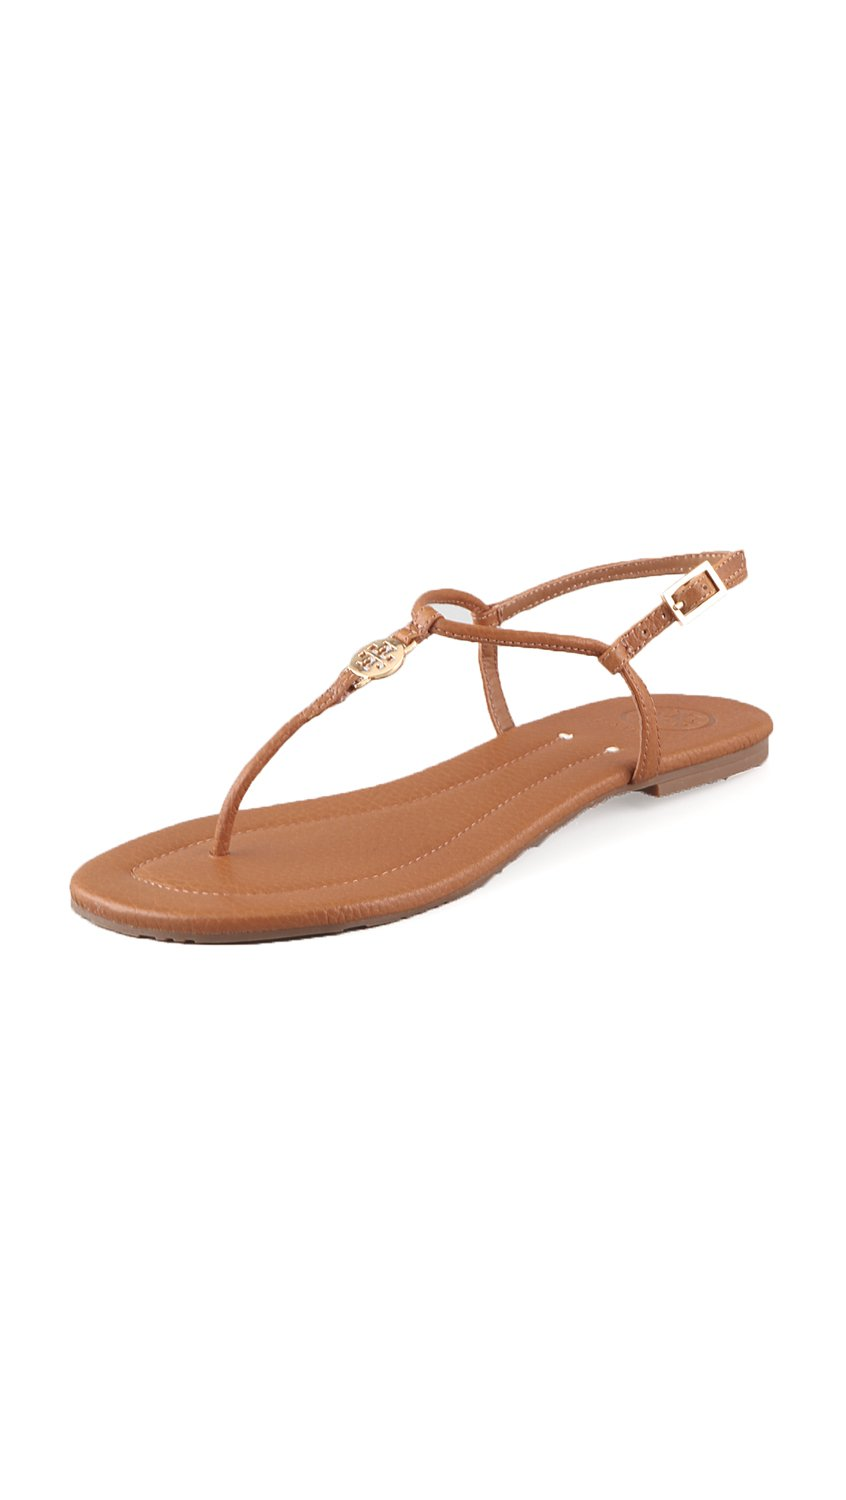 TORY BURCH FLIP FLOPS. Step out in seasonal style with a pair of Tory Burch flip-flops. Make a big splash around the next pool or deck gathering with a cheerful array of pool slide sandals.